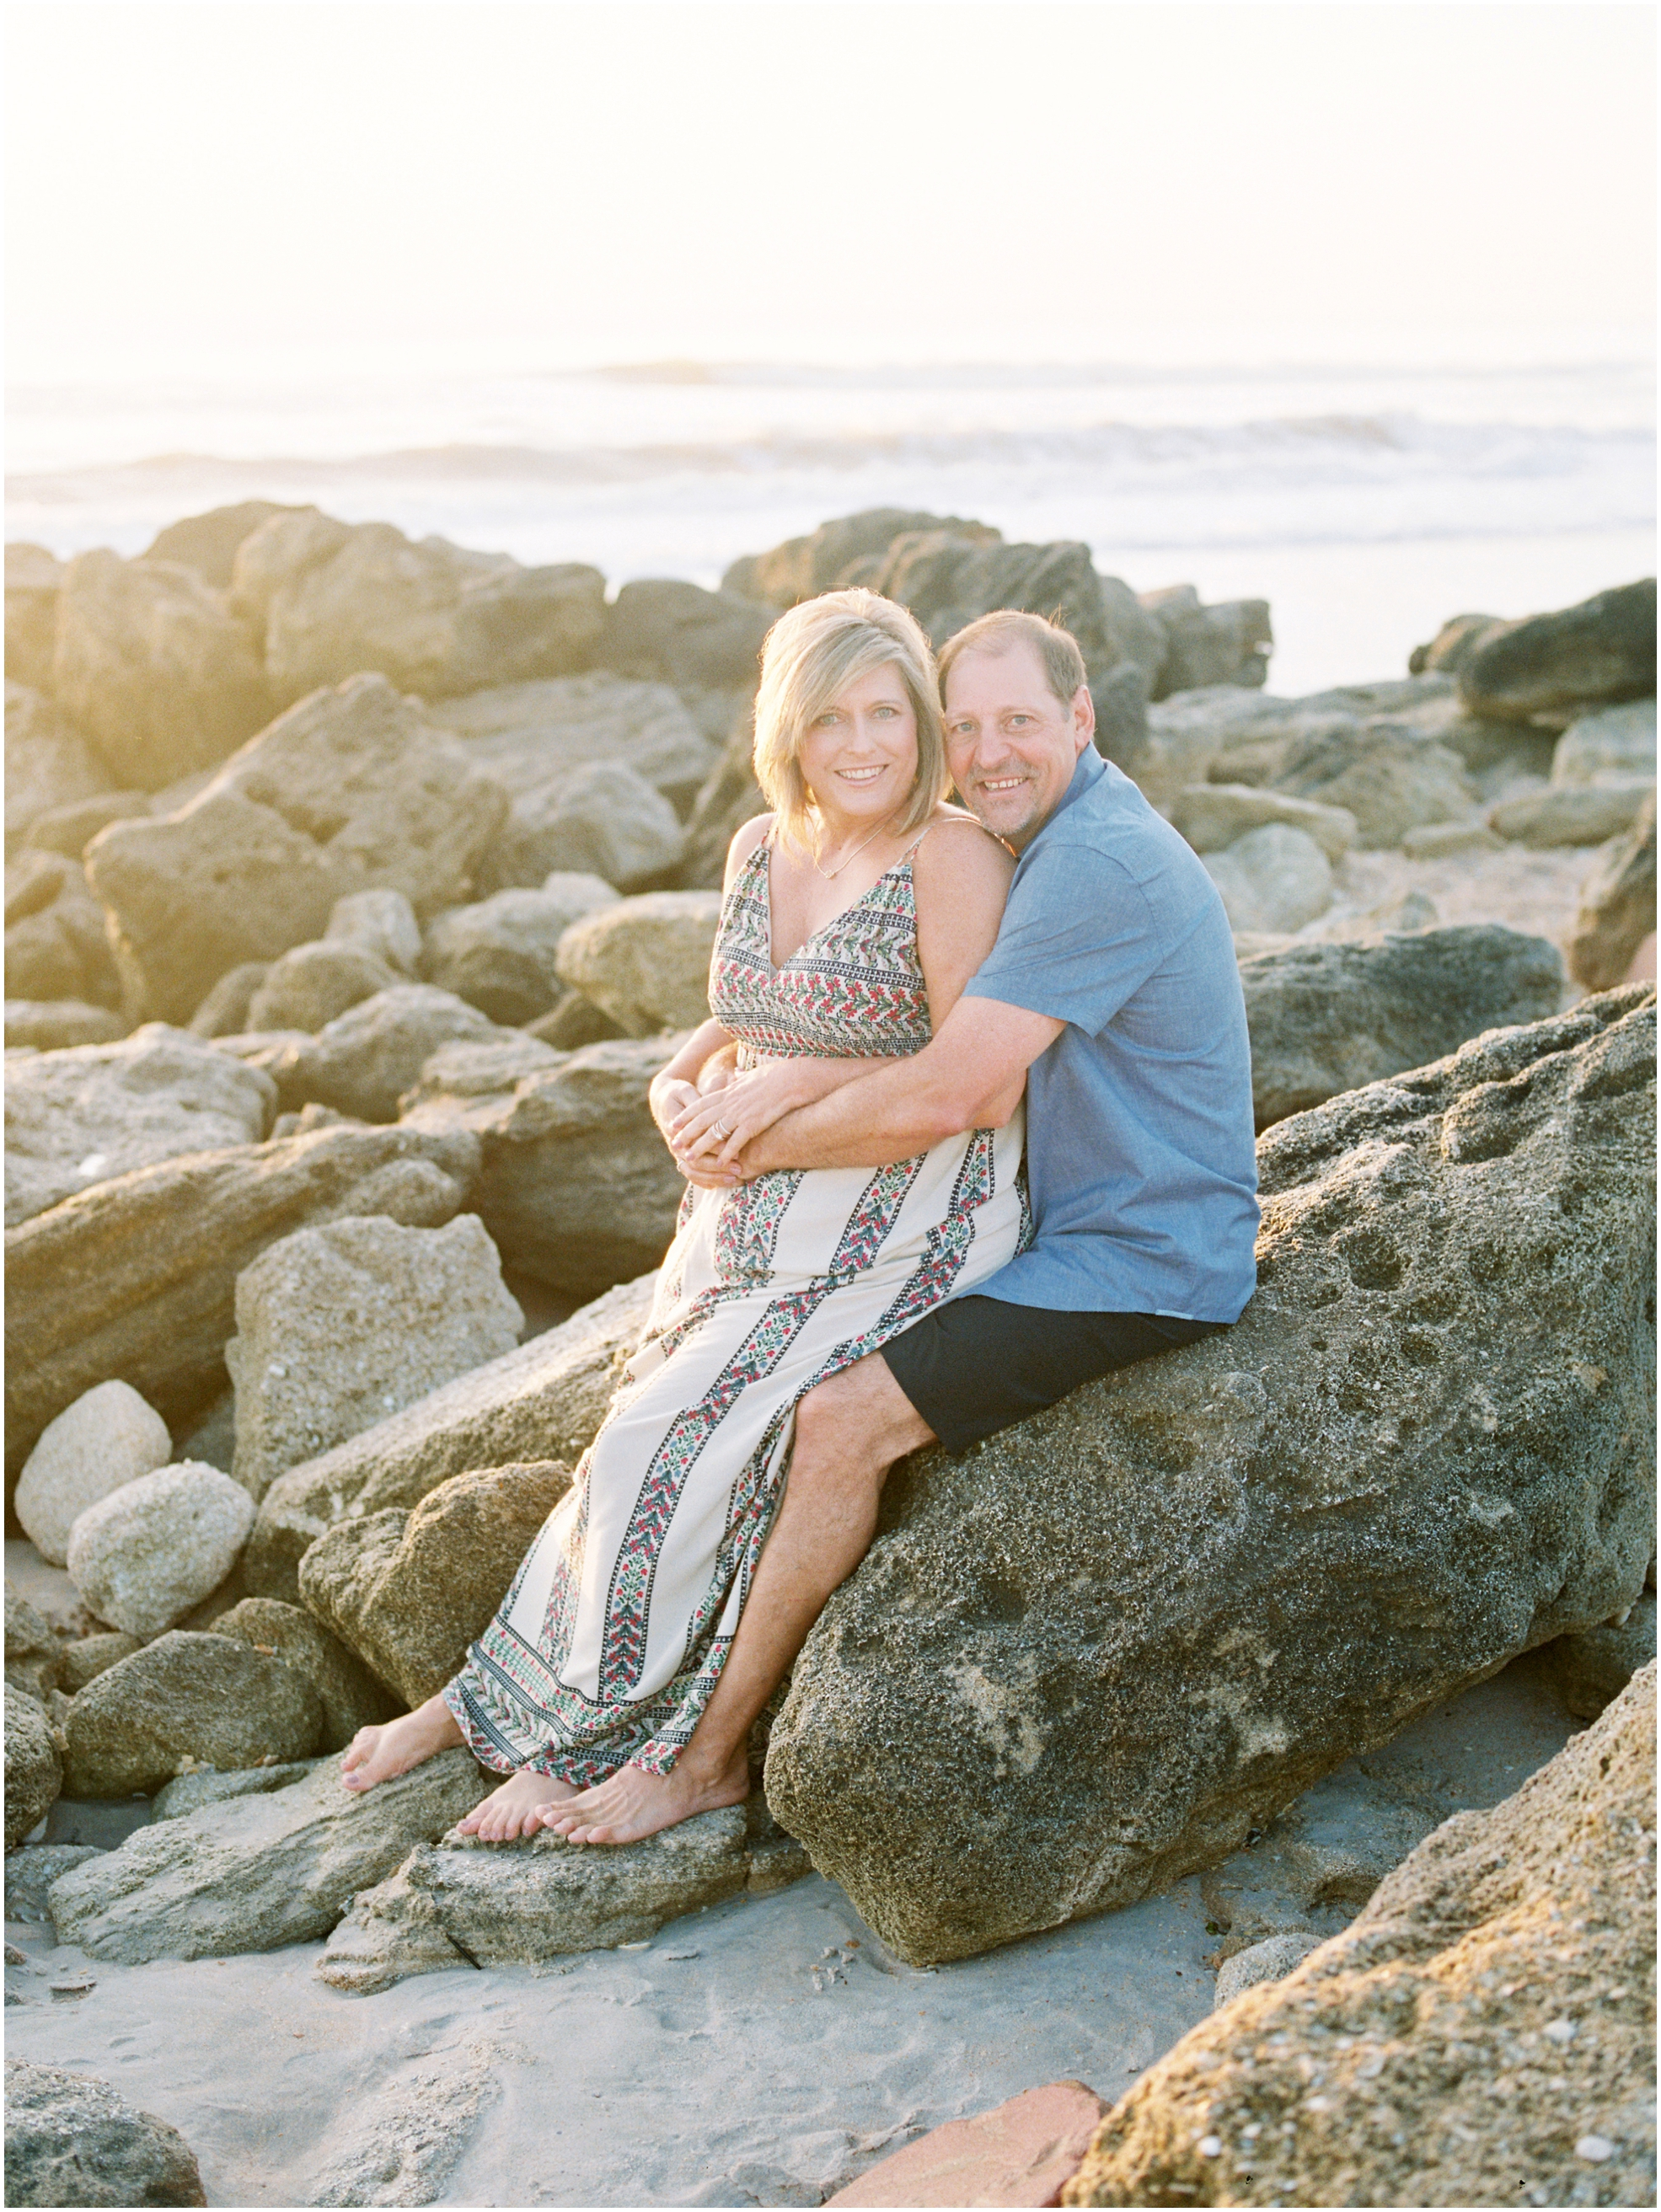 Lisa Silva Photography- Jacksonville, St. Augustine, Amelia Island, Ponte Vedra Beach, North East Florida Fine Art Film Photographer- Anniversary Session at Washington Oaks in Palm Coast, Florida_0007.jpg